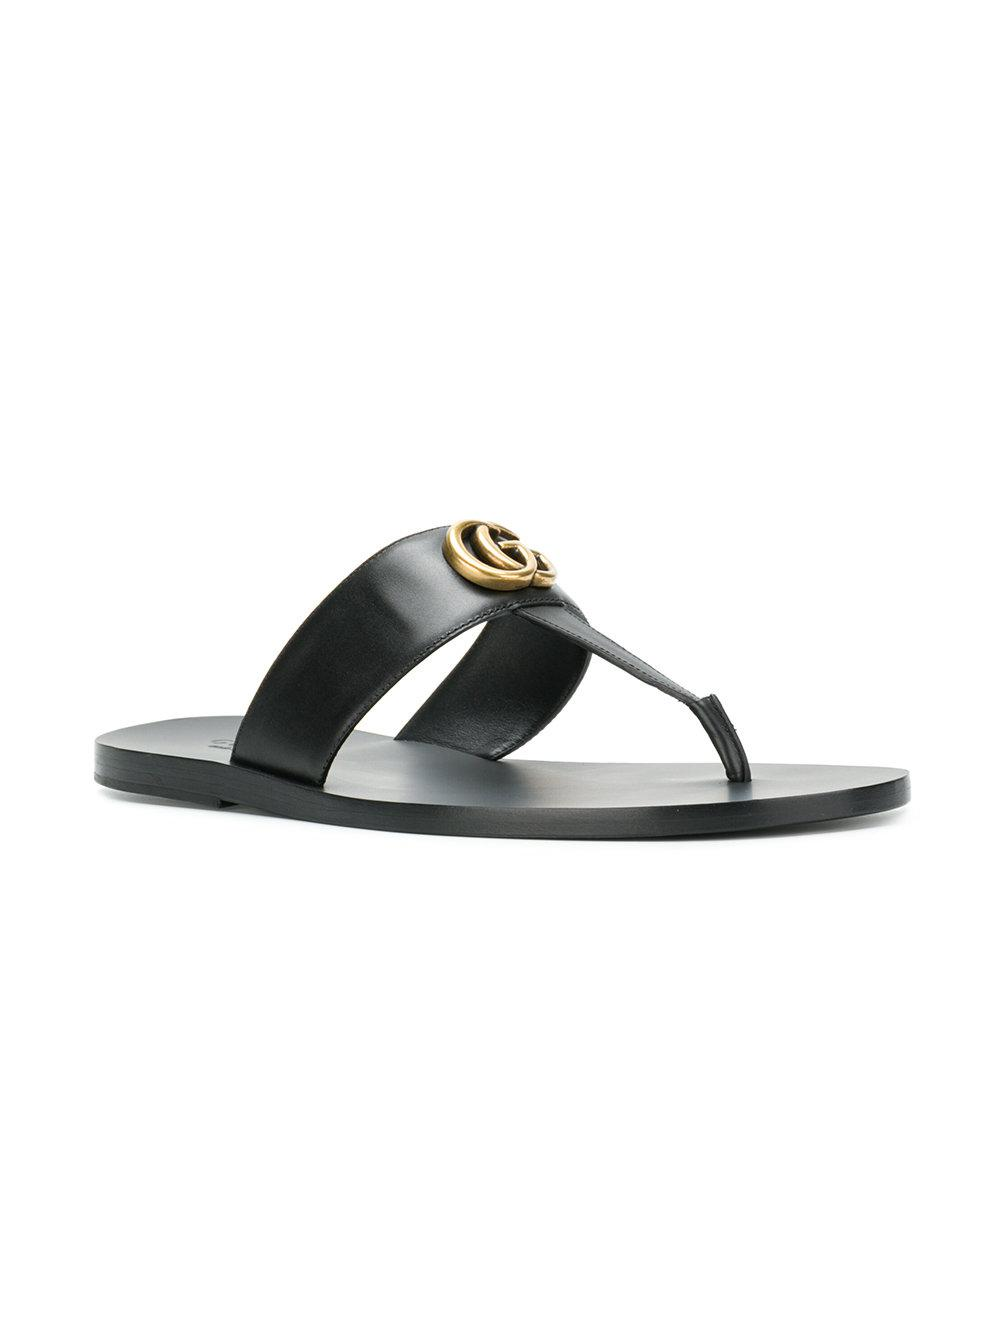 Leather Double G sandal - Black Gucci